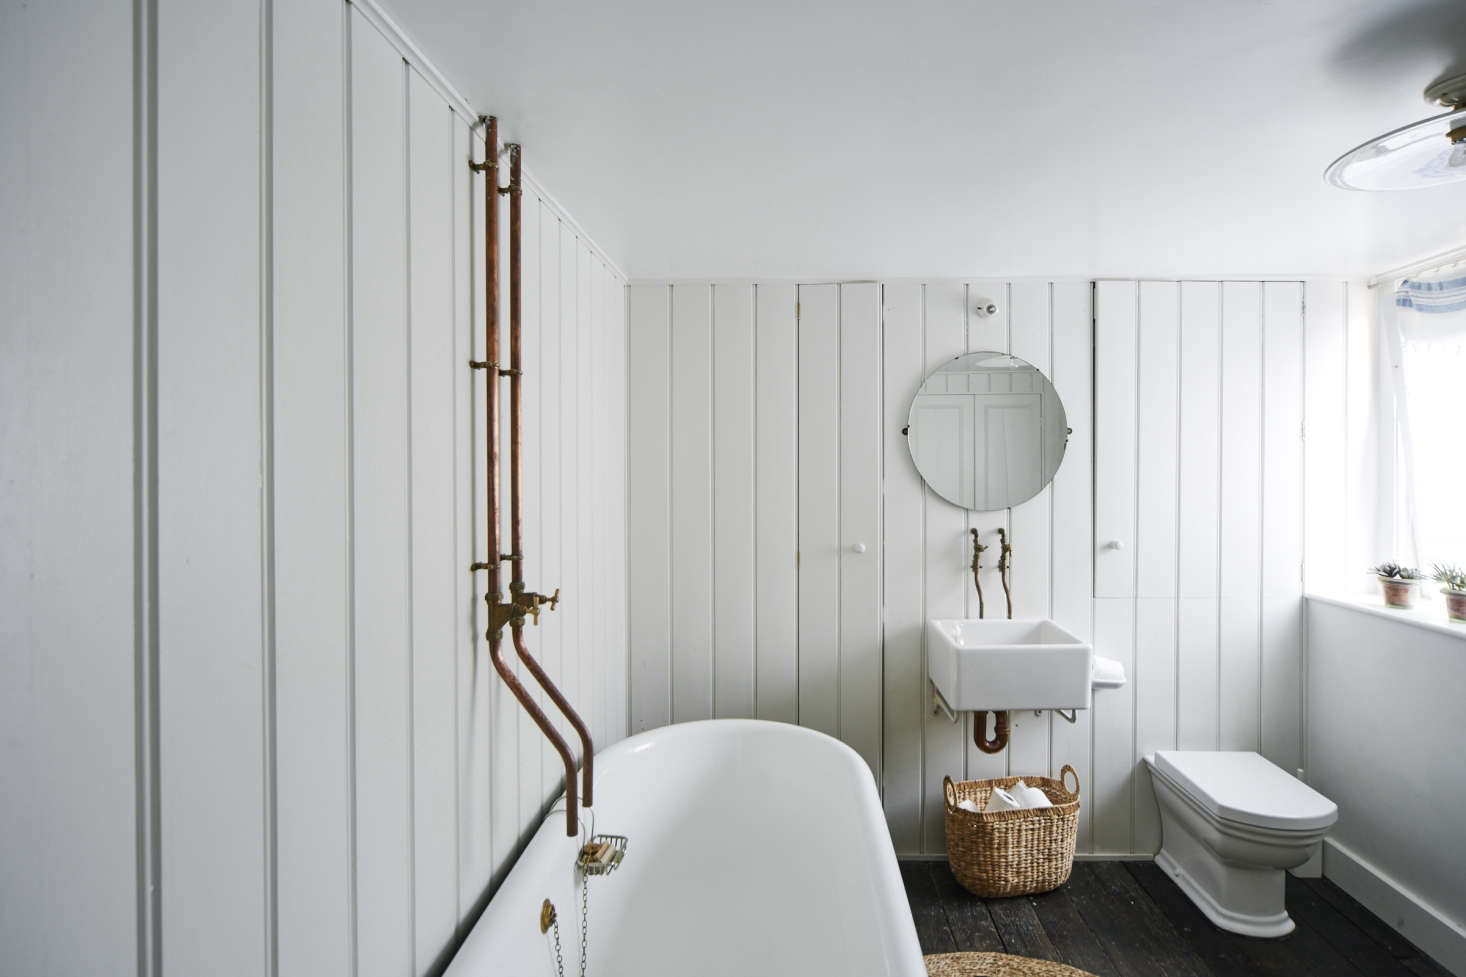 Photograph by Matt Lincoln fromA Historic House Reimagined for a Modern Family in Stroud, England(plus a smart work-around for the plumbing issue: mount the tub closer to the wall).